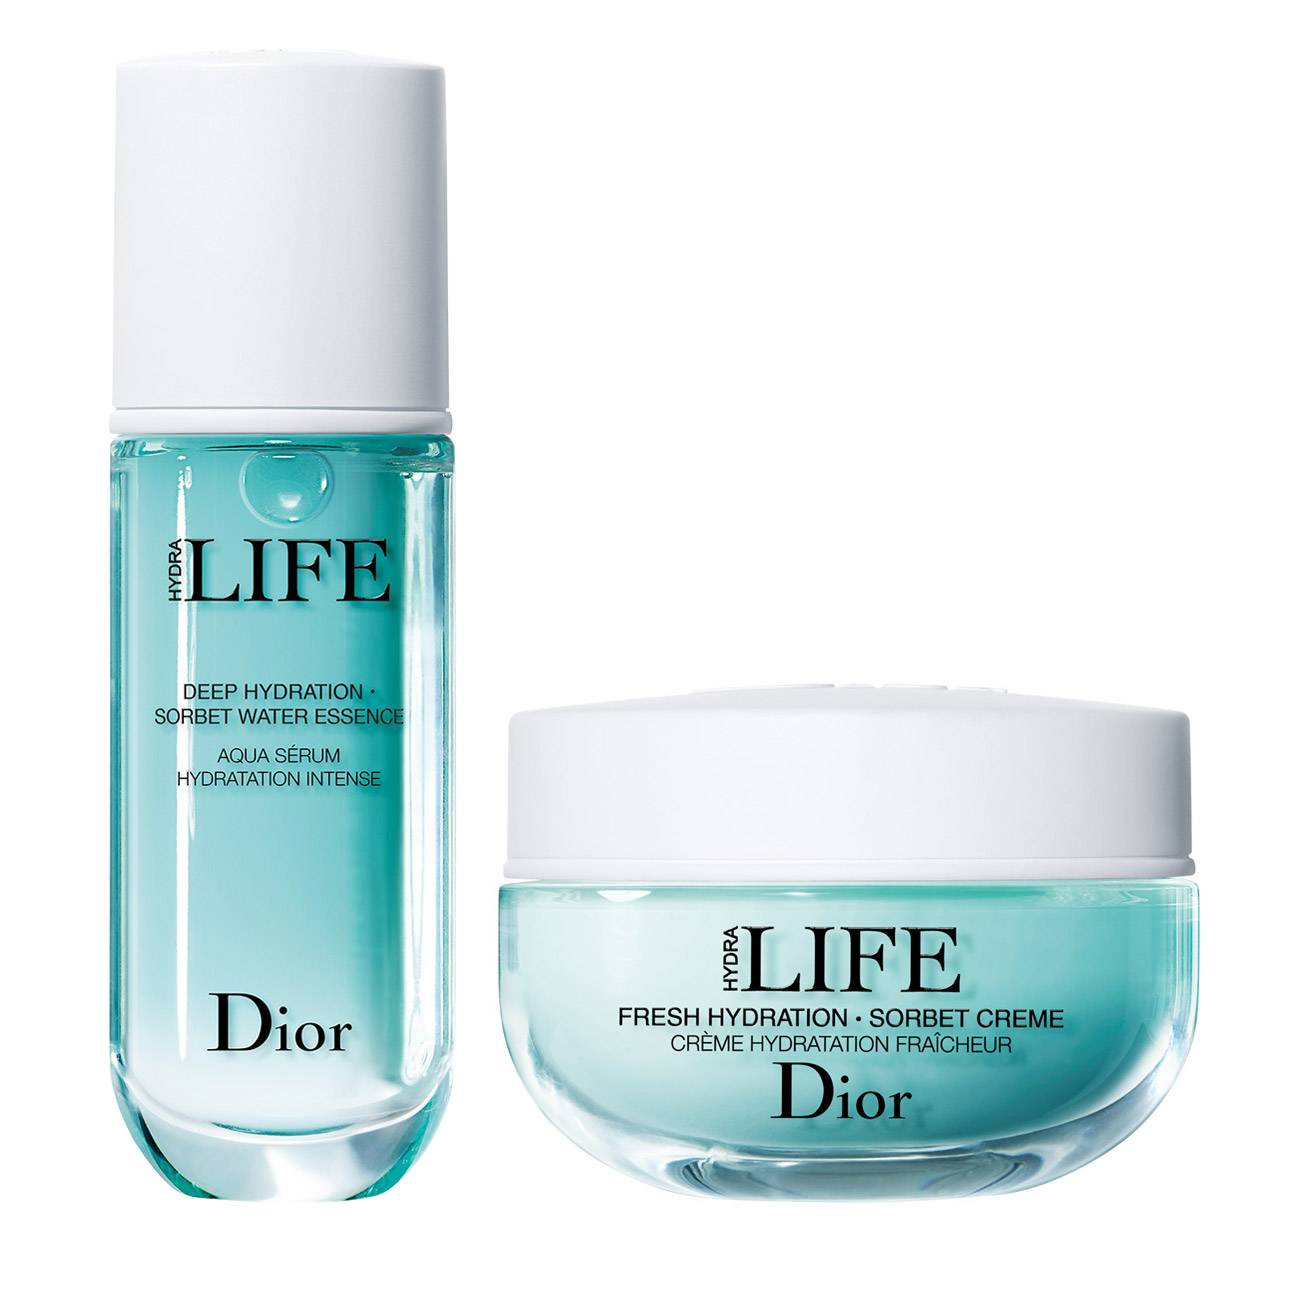 LIFE TRAVEL LIFE DUO SET 90 Ml